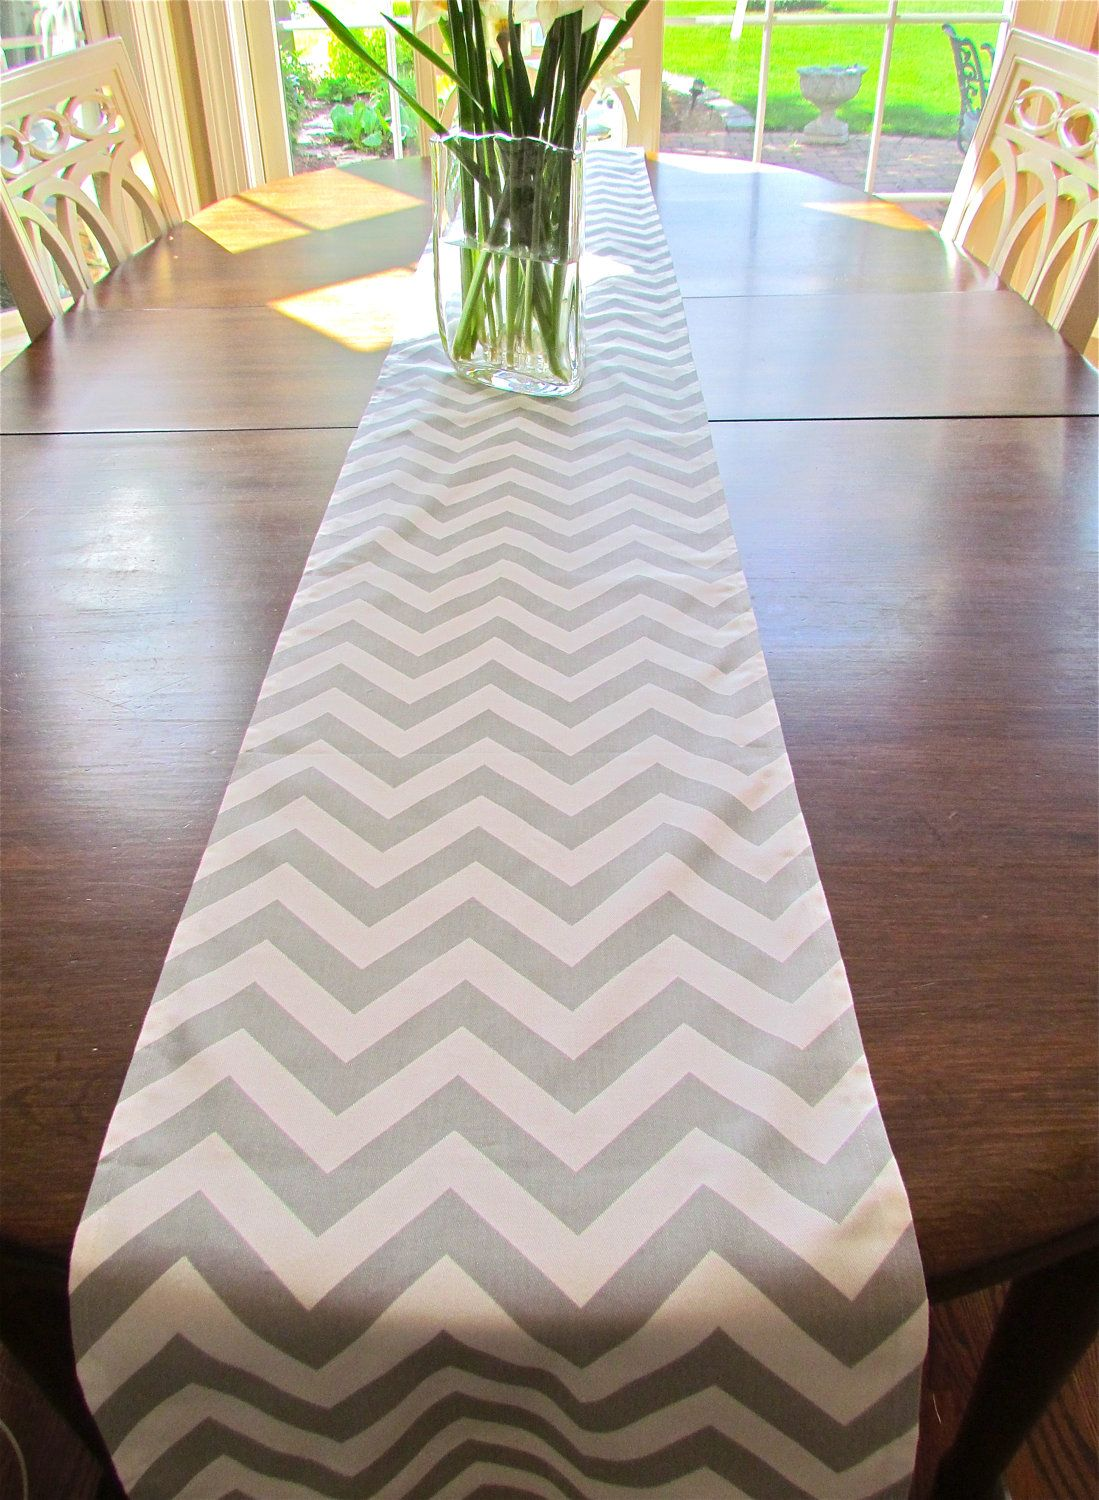 TABLE RUNNER 13 X 72 GRAY Chevron Table Runners Silver Wedding Showers  Decorative Christmas Holiday Table Runner Cloth. $23.95, Via Etsy.